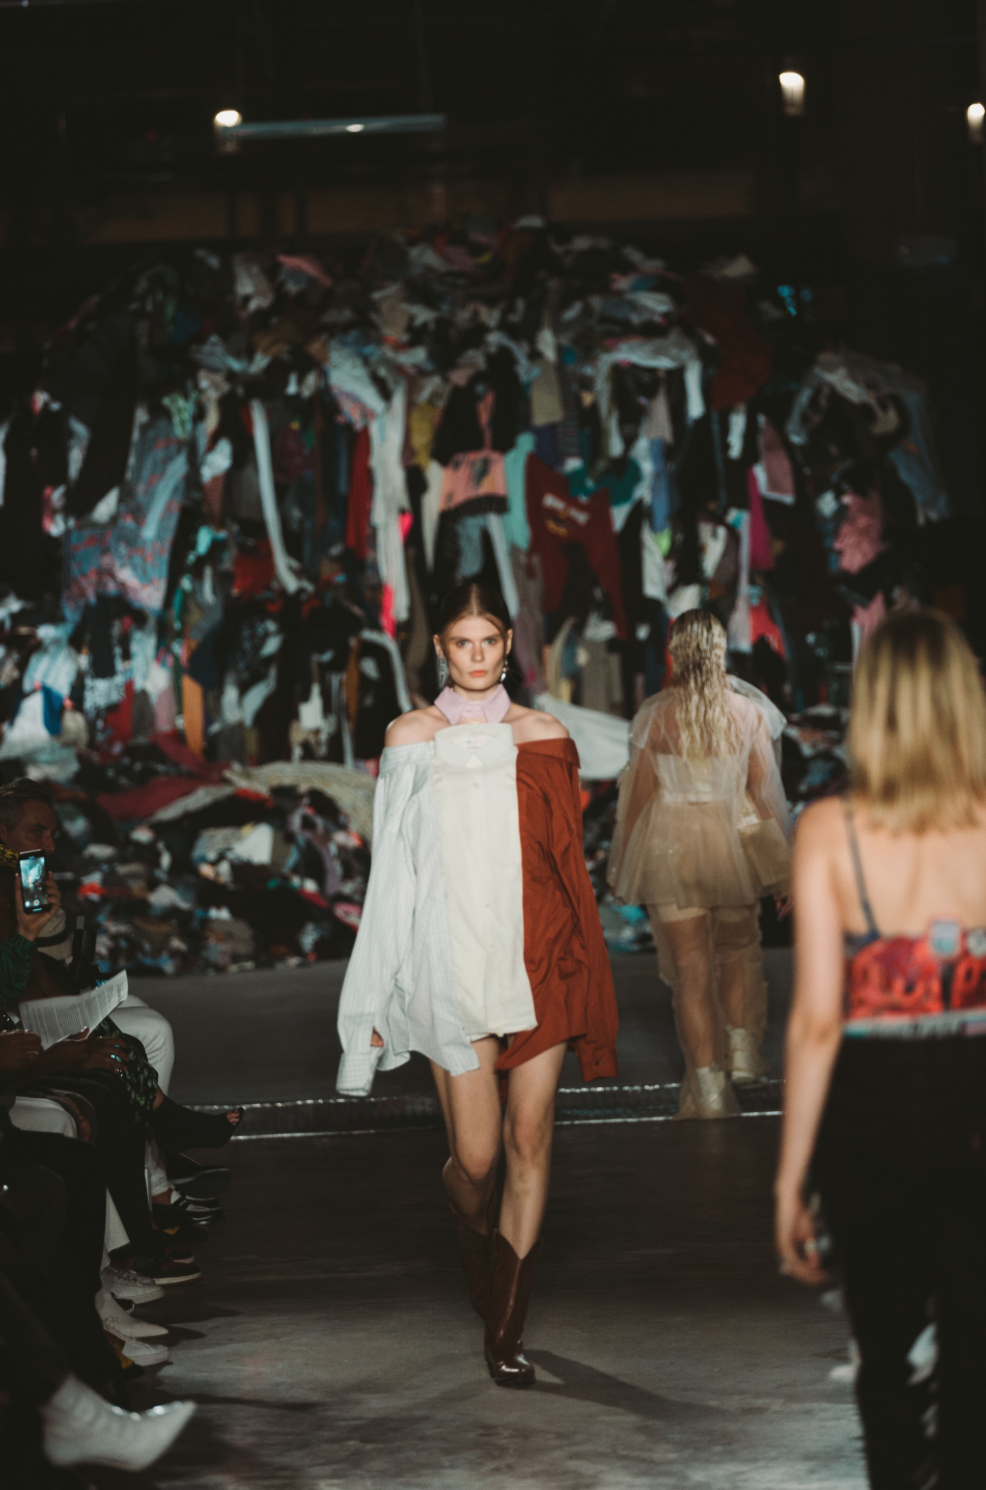 Look 2 : - Made by @cityviewscoop dresses made from 6 old shirts.